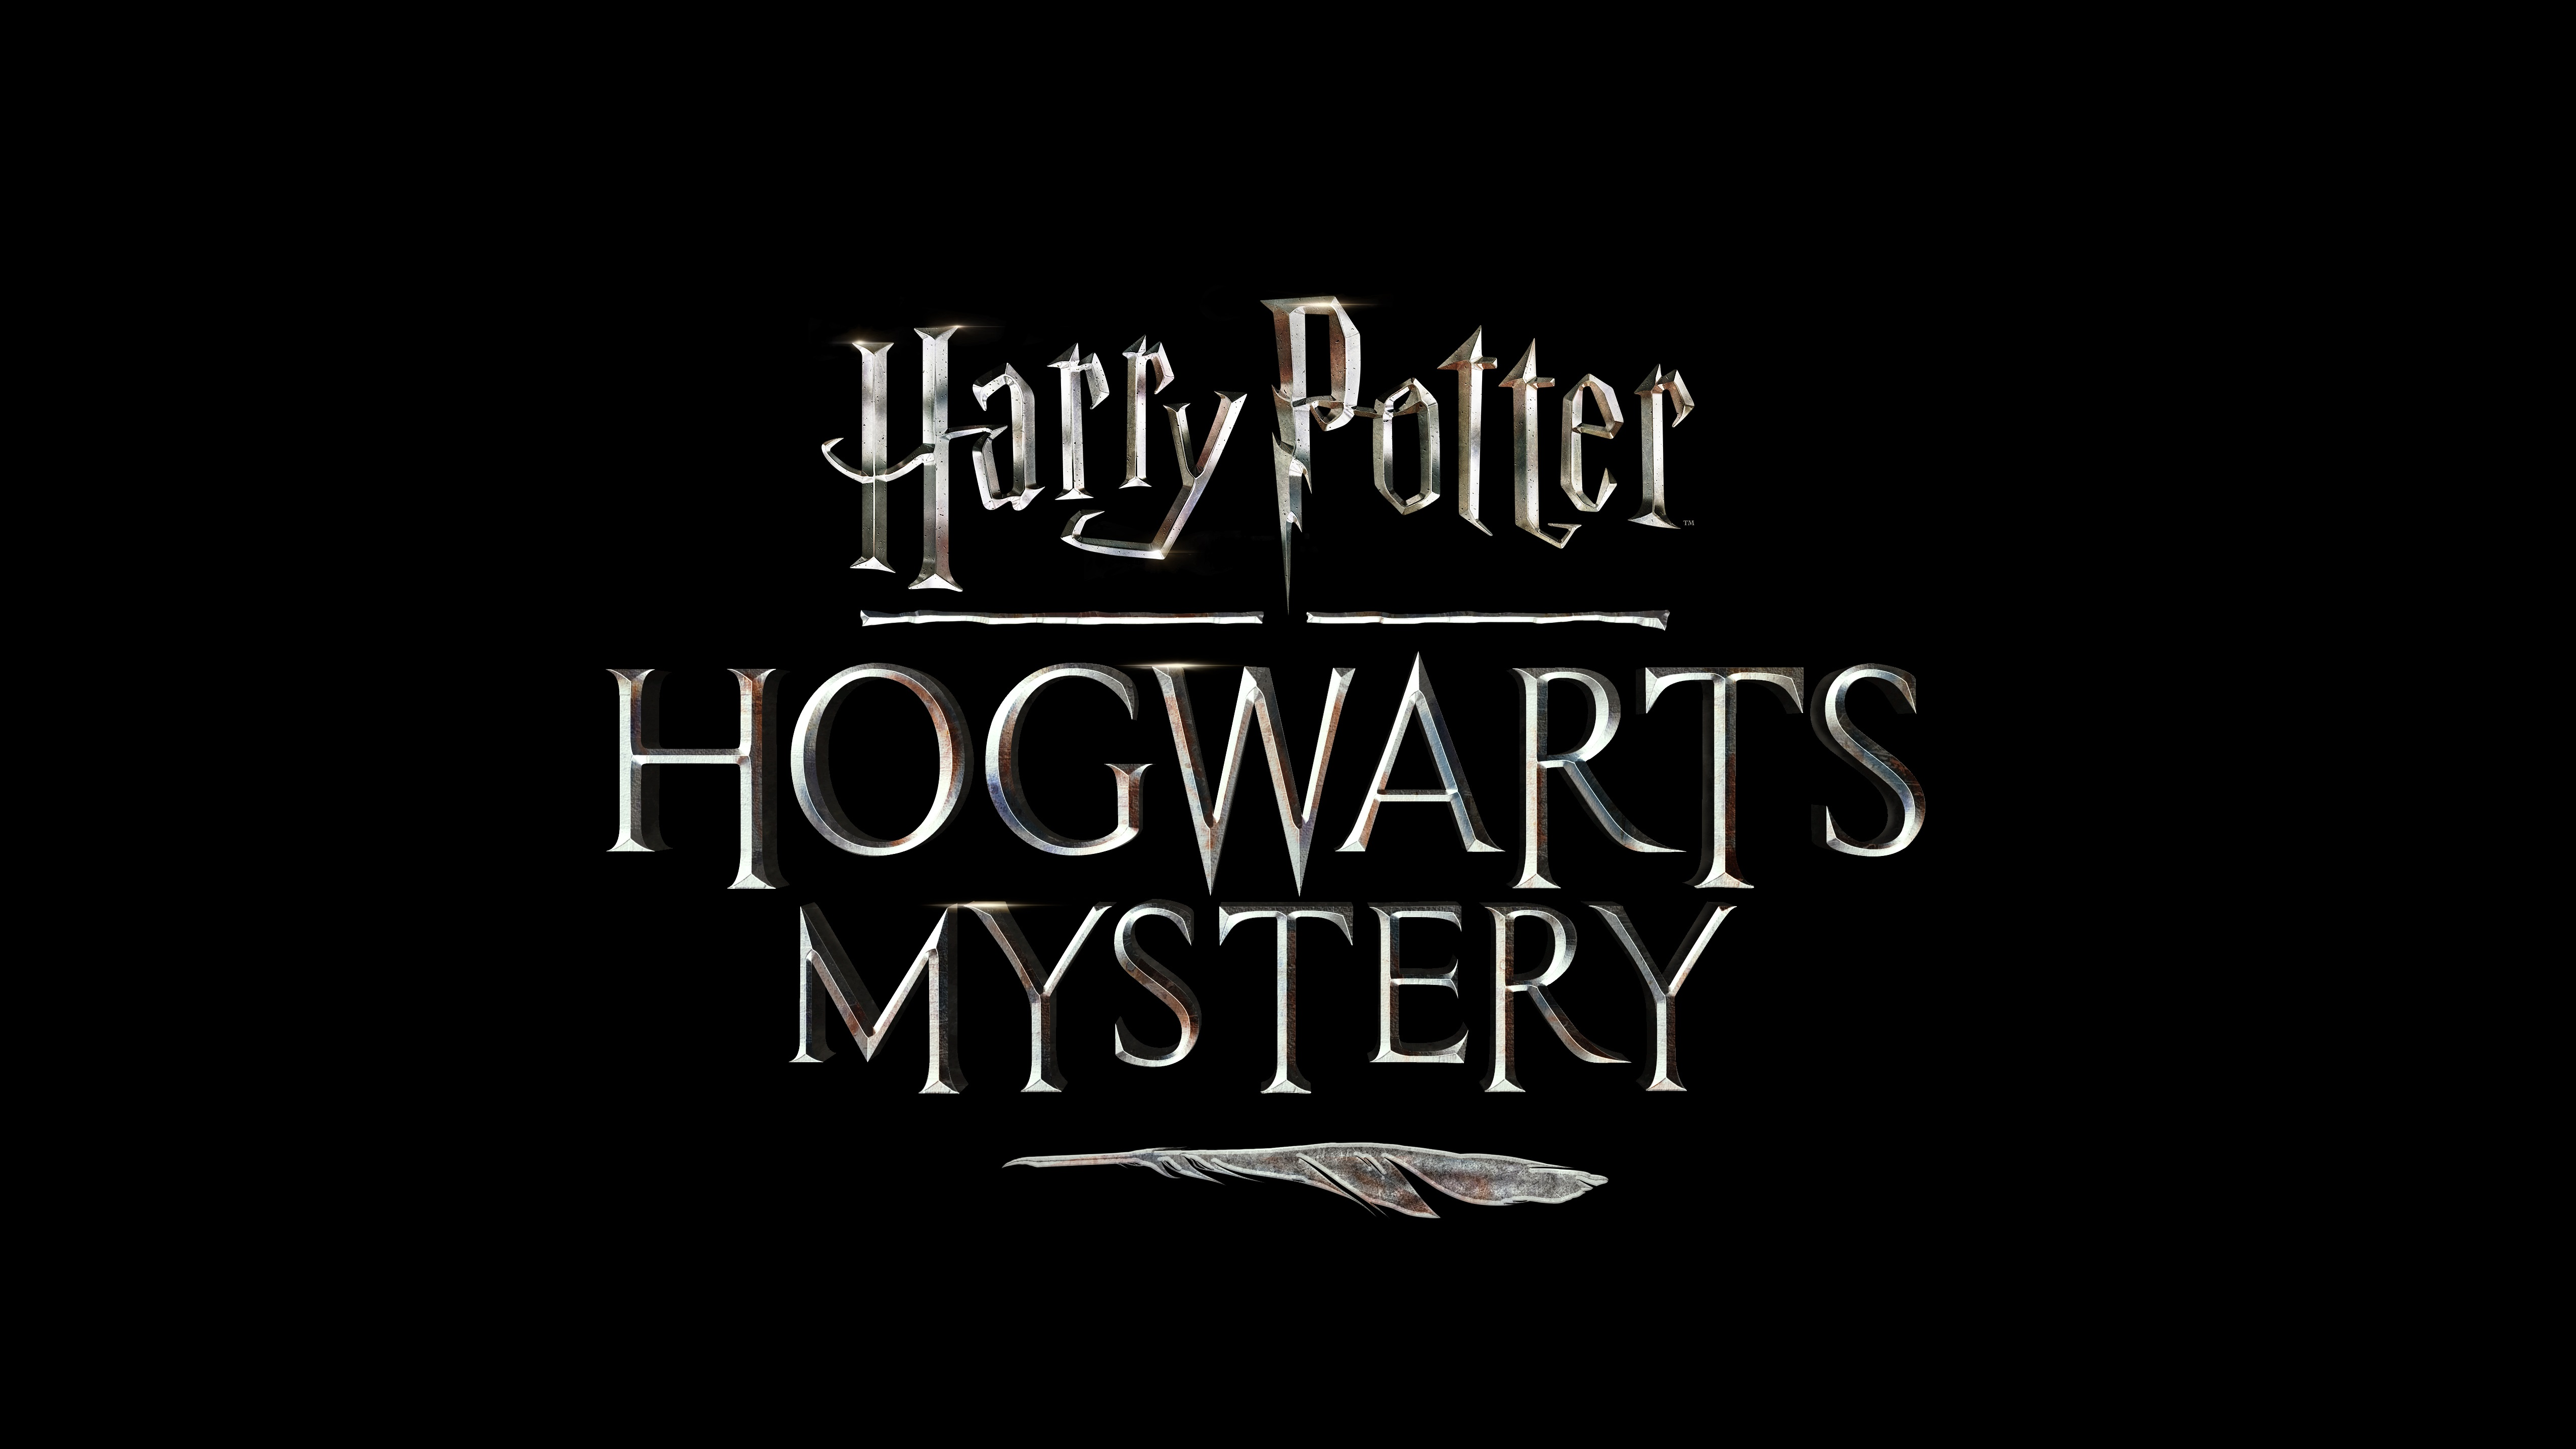 Harry Potter Hogwarts Mystery Game Logo, HD Games, 4k Wallpapers